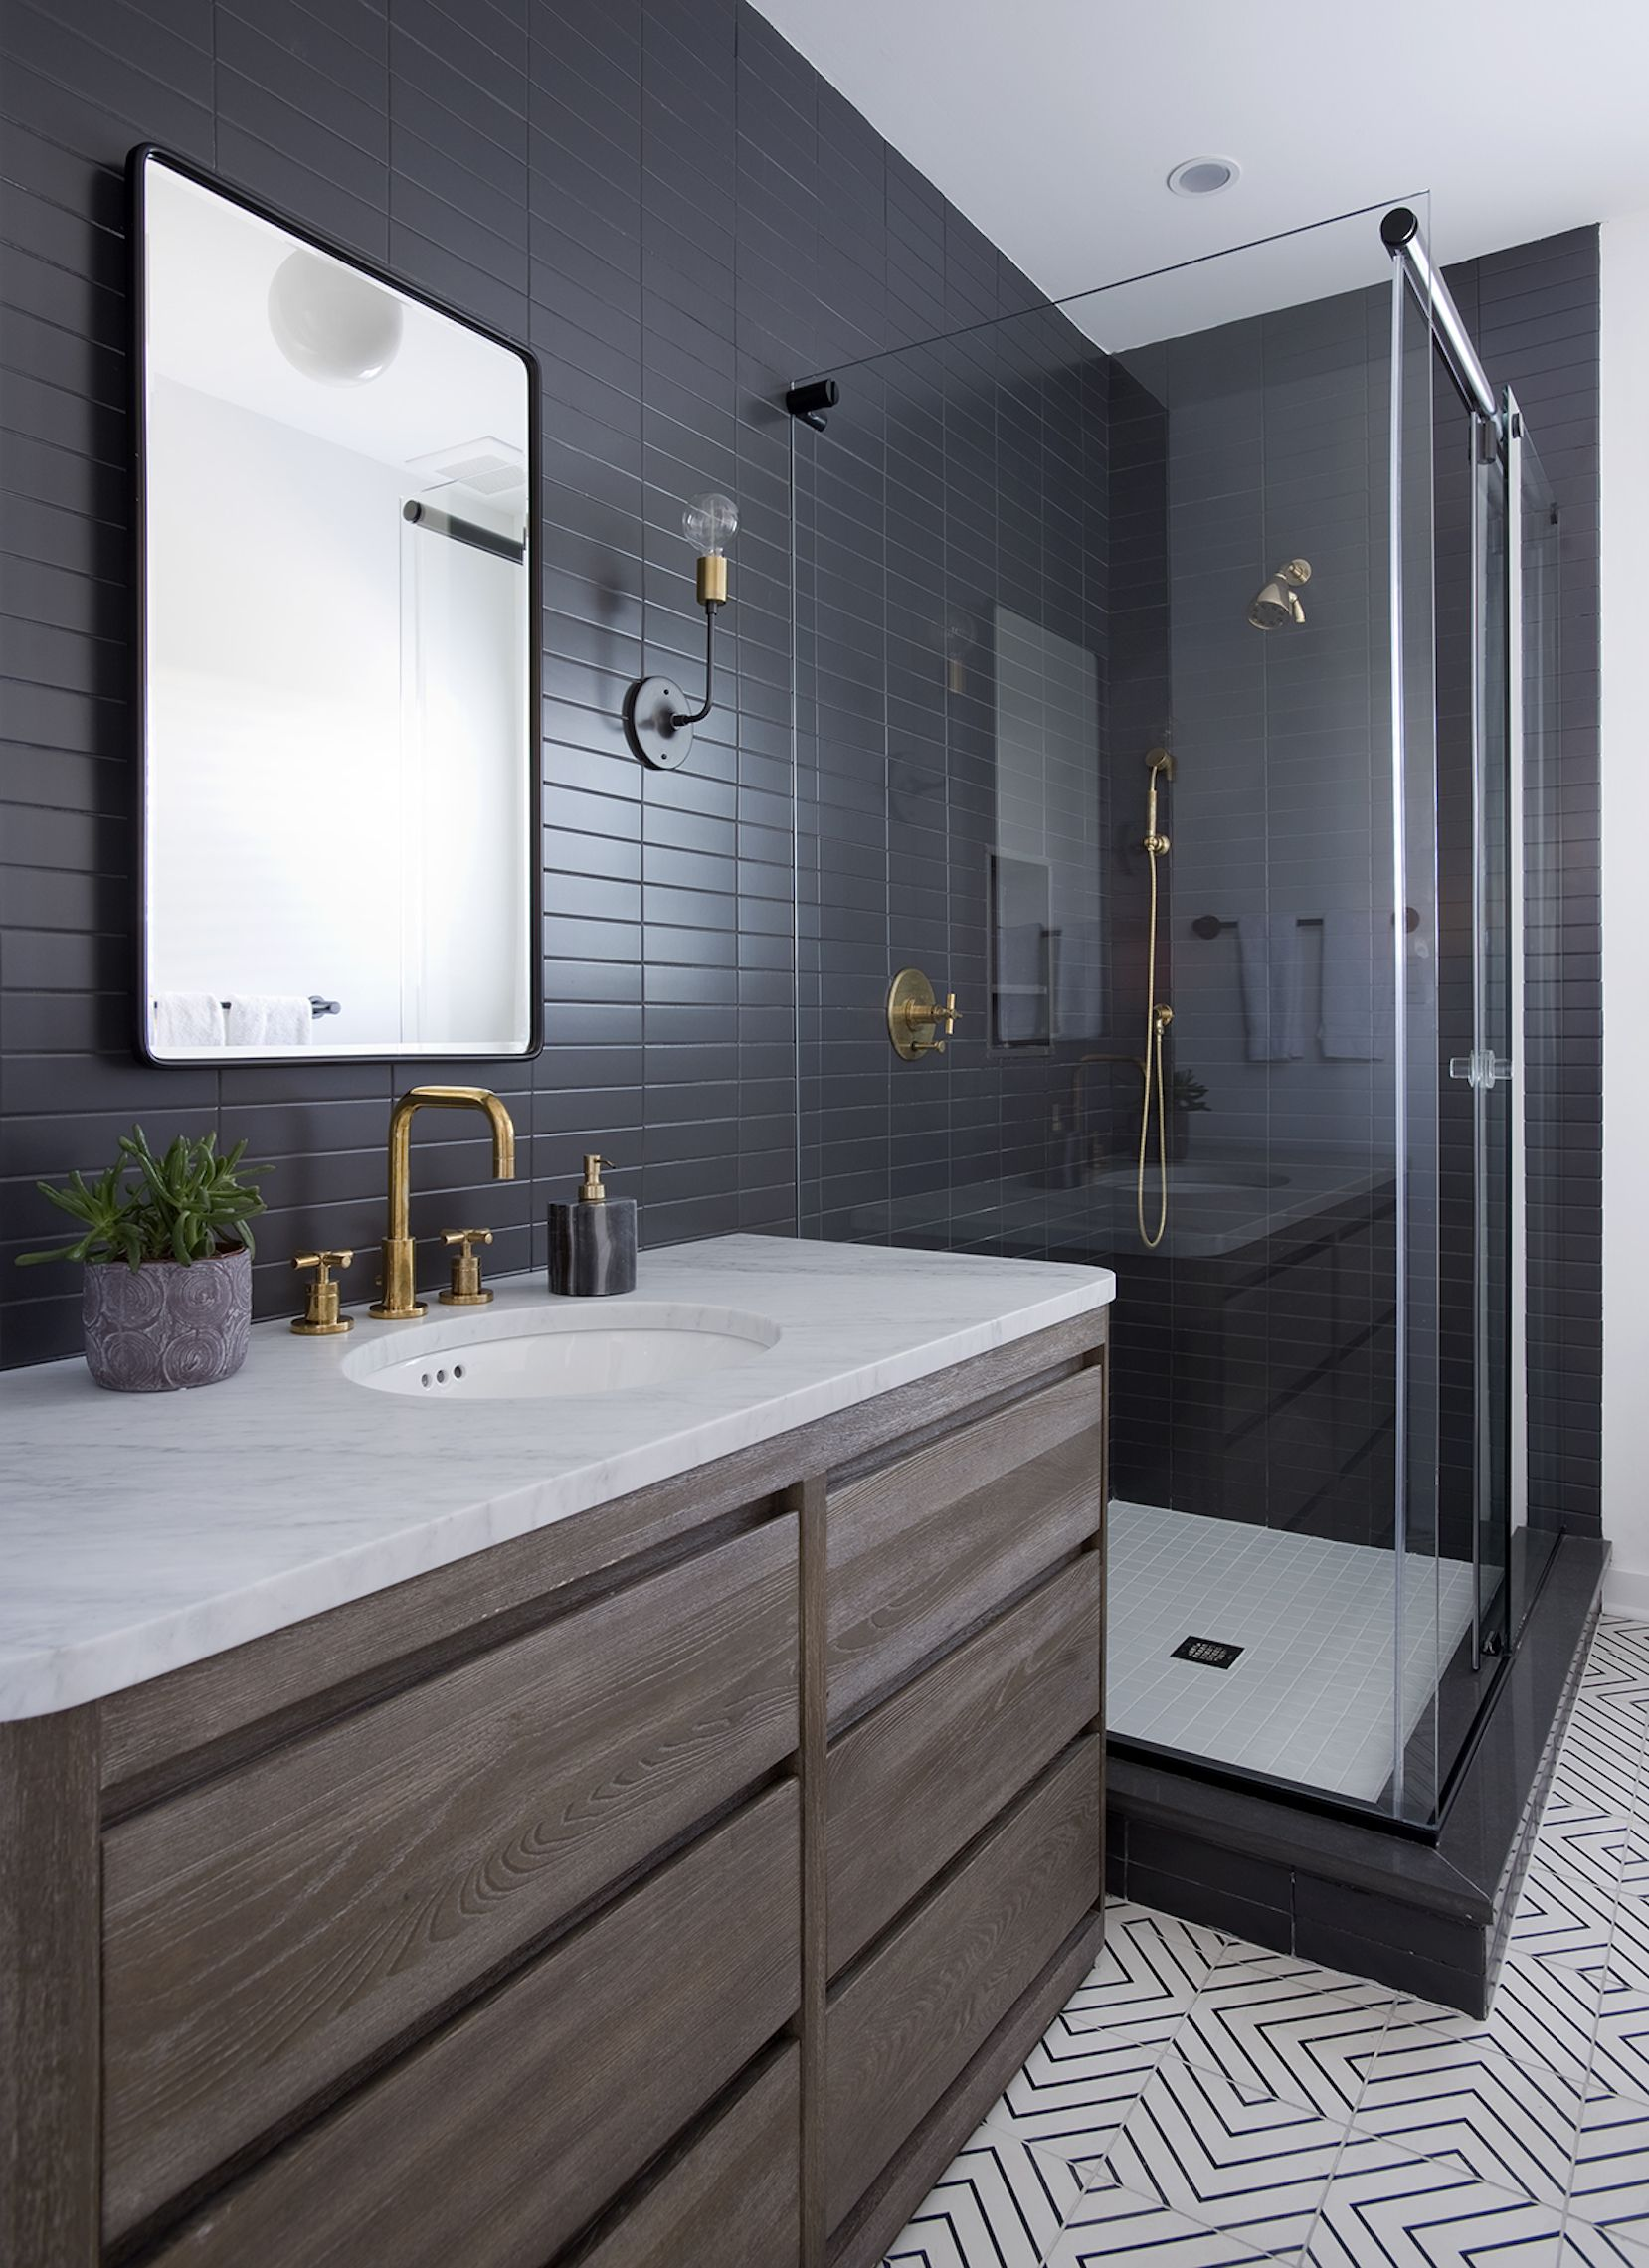 Sleek Modern Dark Bathroom With Glossy Tiled Walls